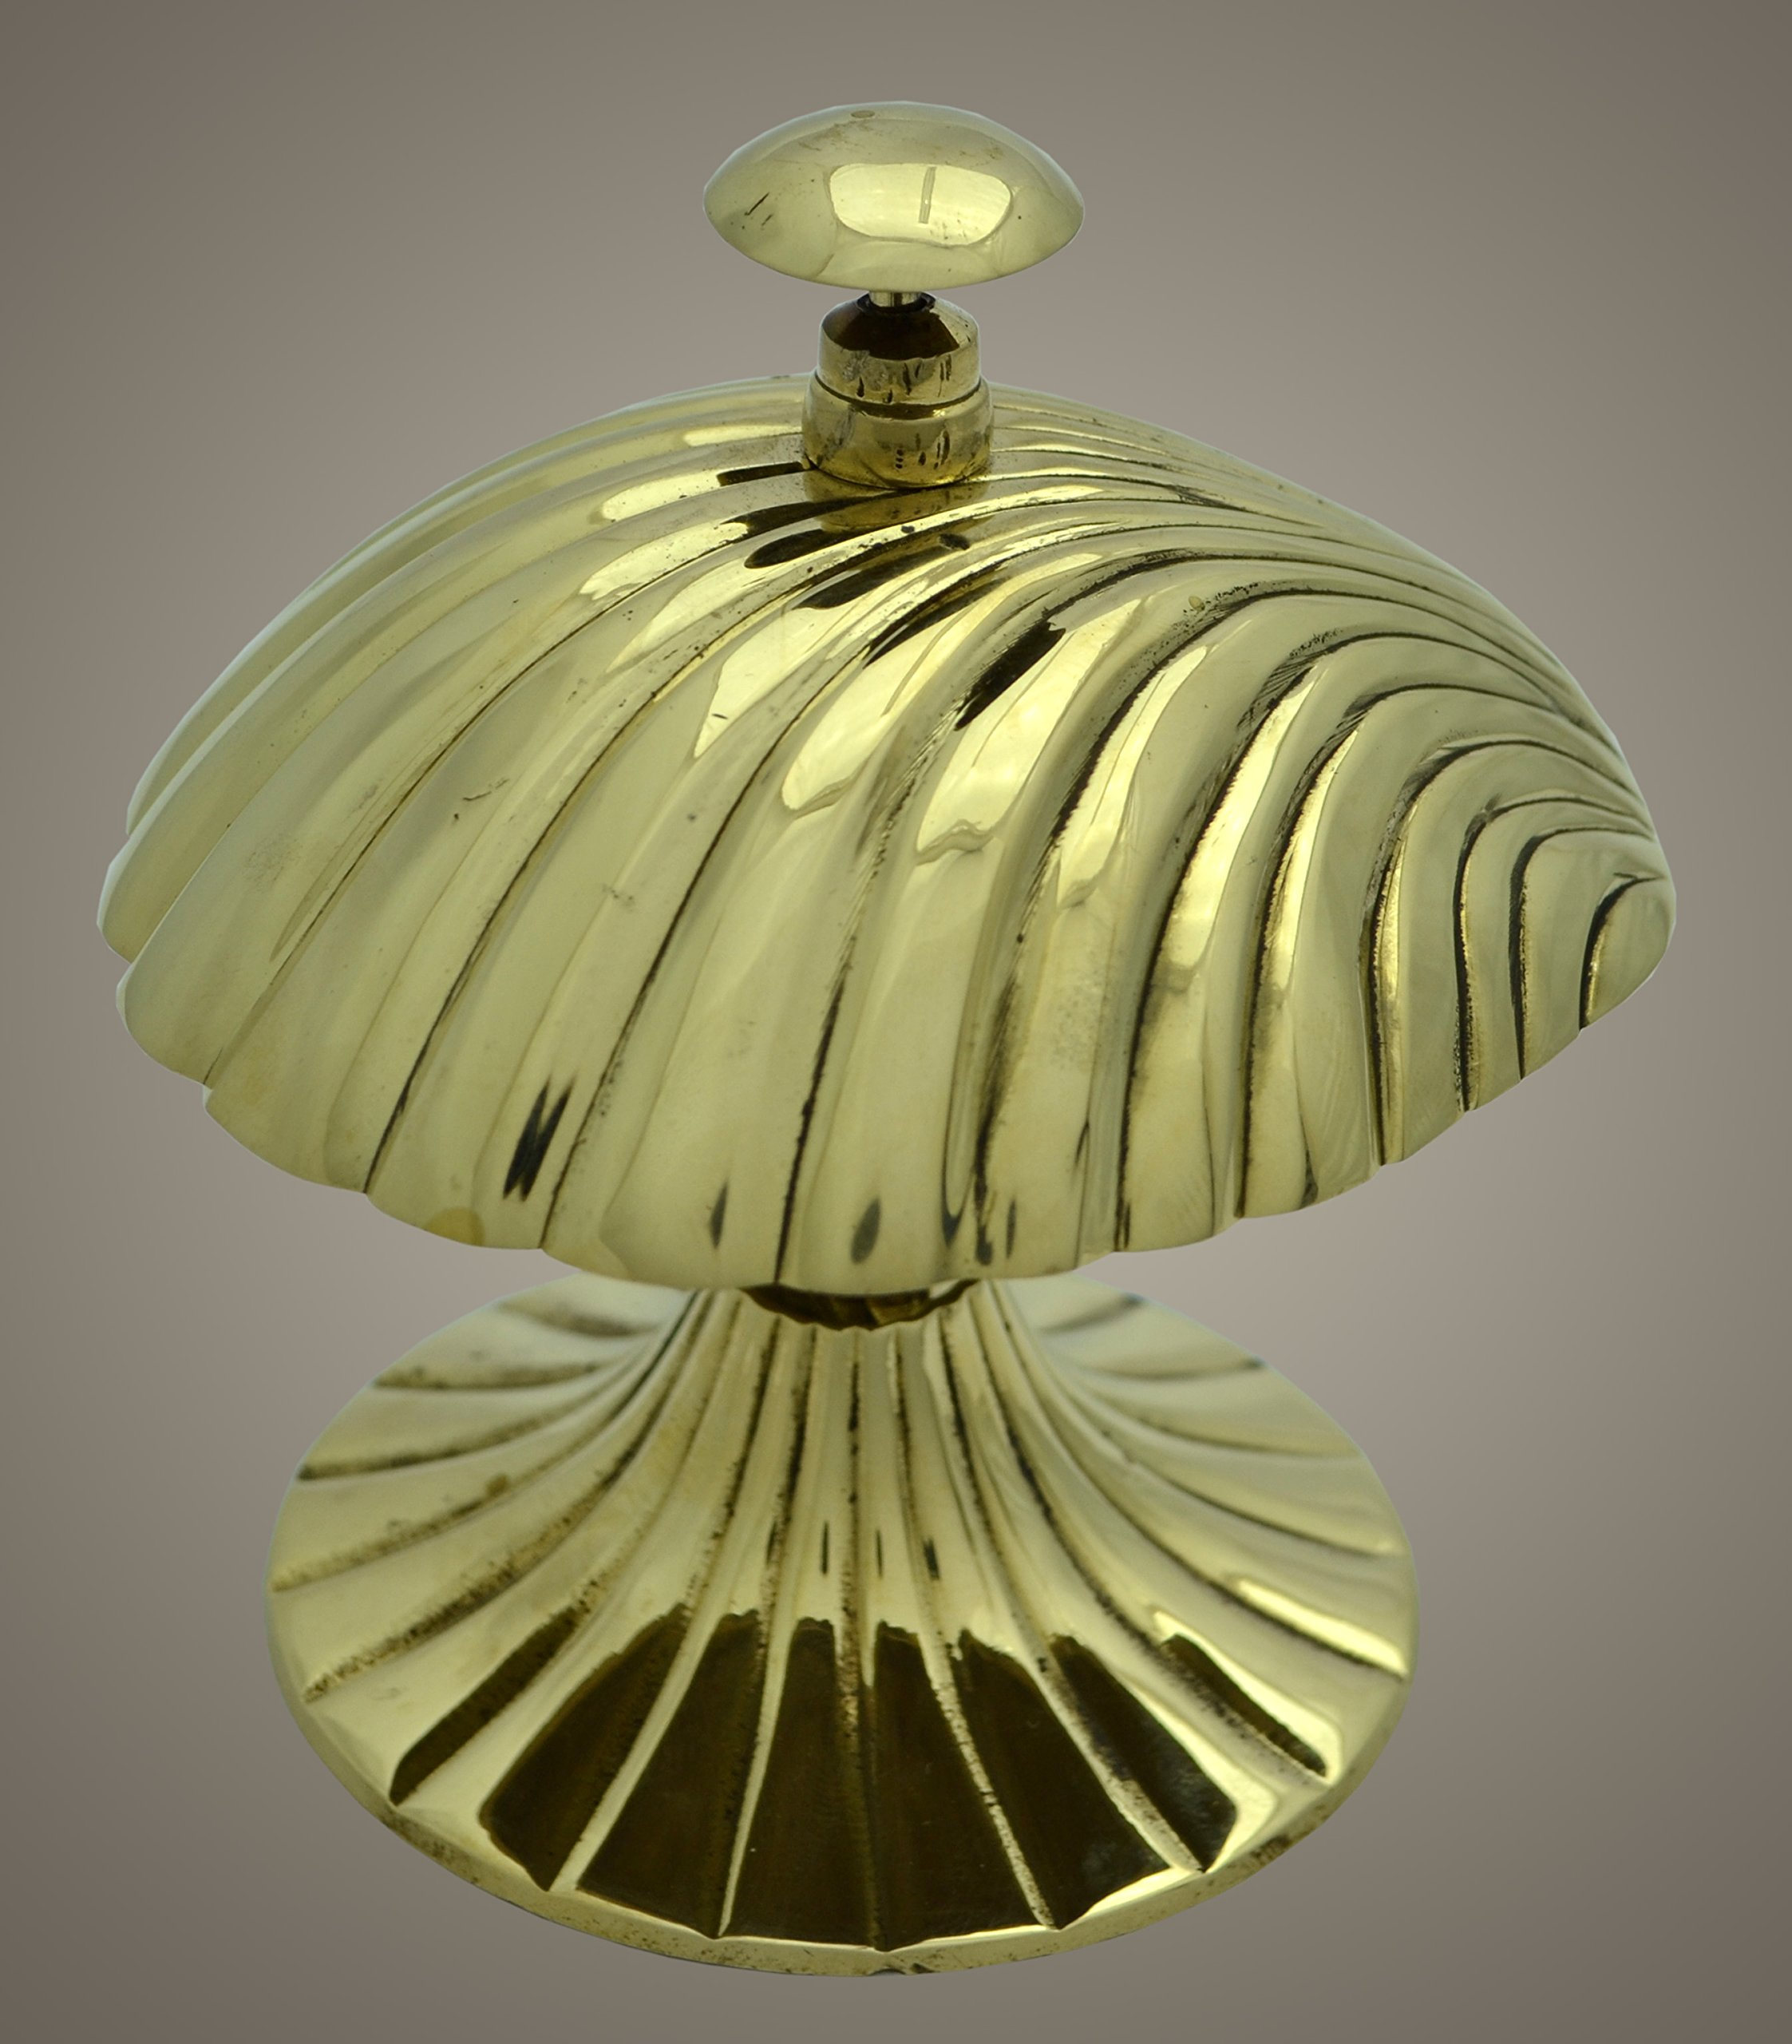 Brass Nautical Service Desk Bell Hotel Counter Table Bell 4inch Tall